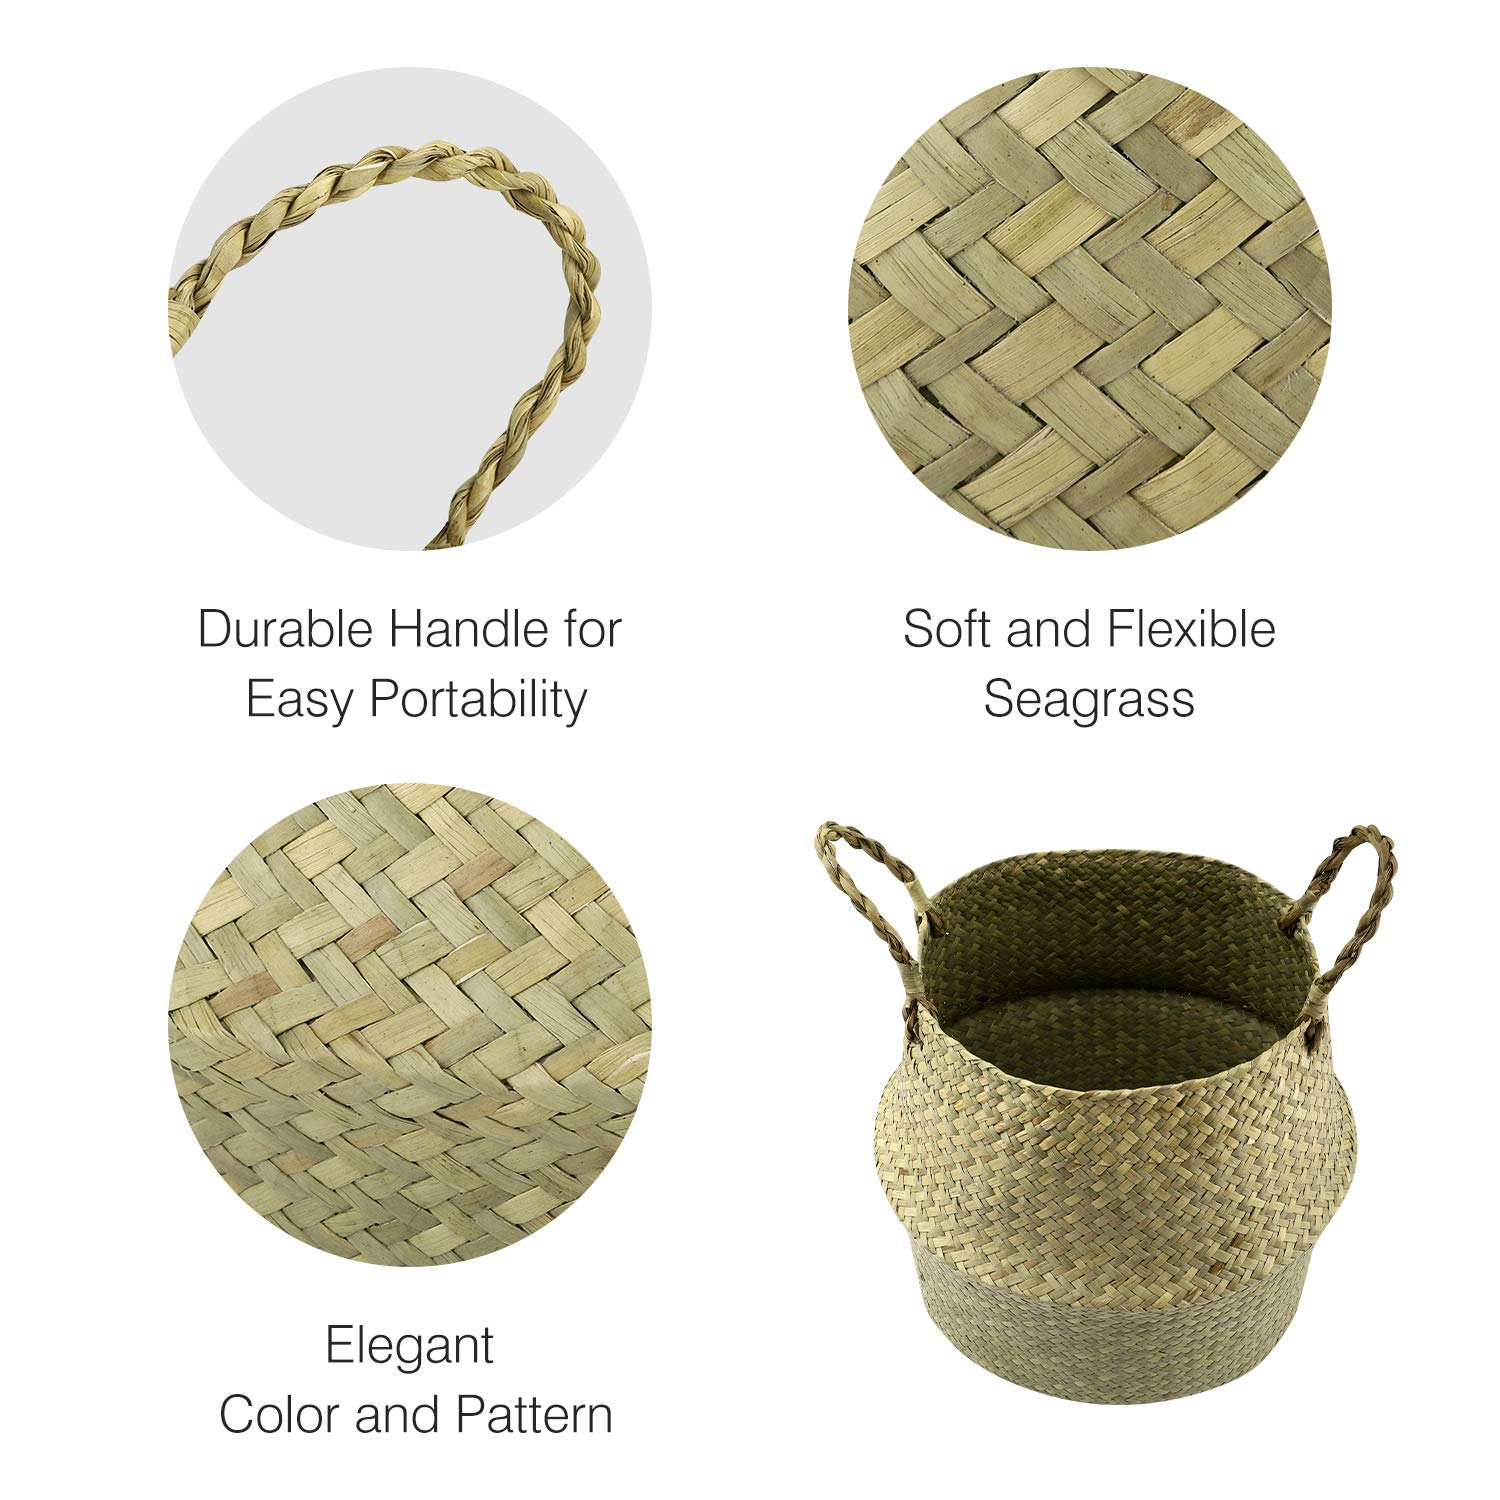 Black Lewondr Natural Seagrass Belly Basket 31cm Collapsible Handmade Plant Pot Planter Floral Texture Weave Tote Basket with Handle for Storage Laundry Home Picnic Natural